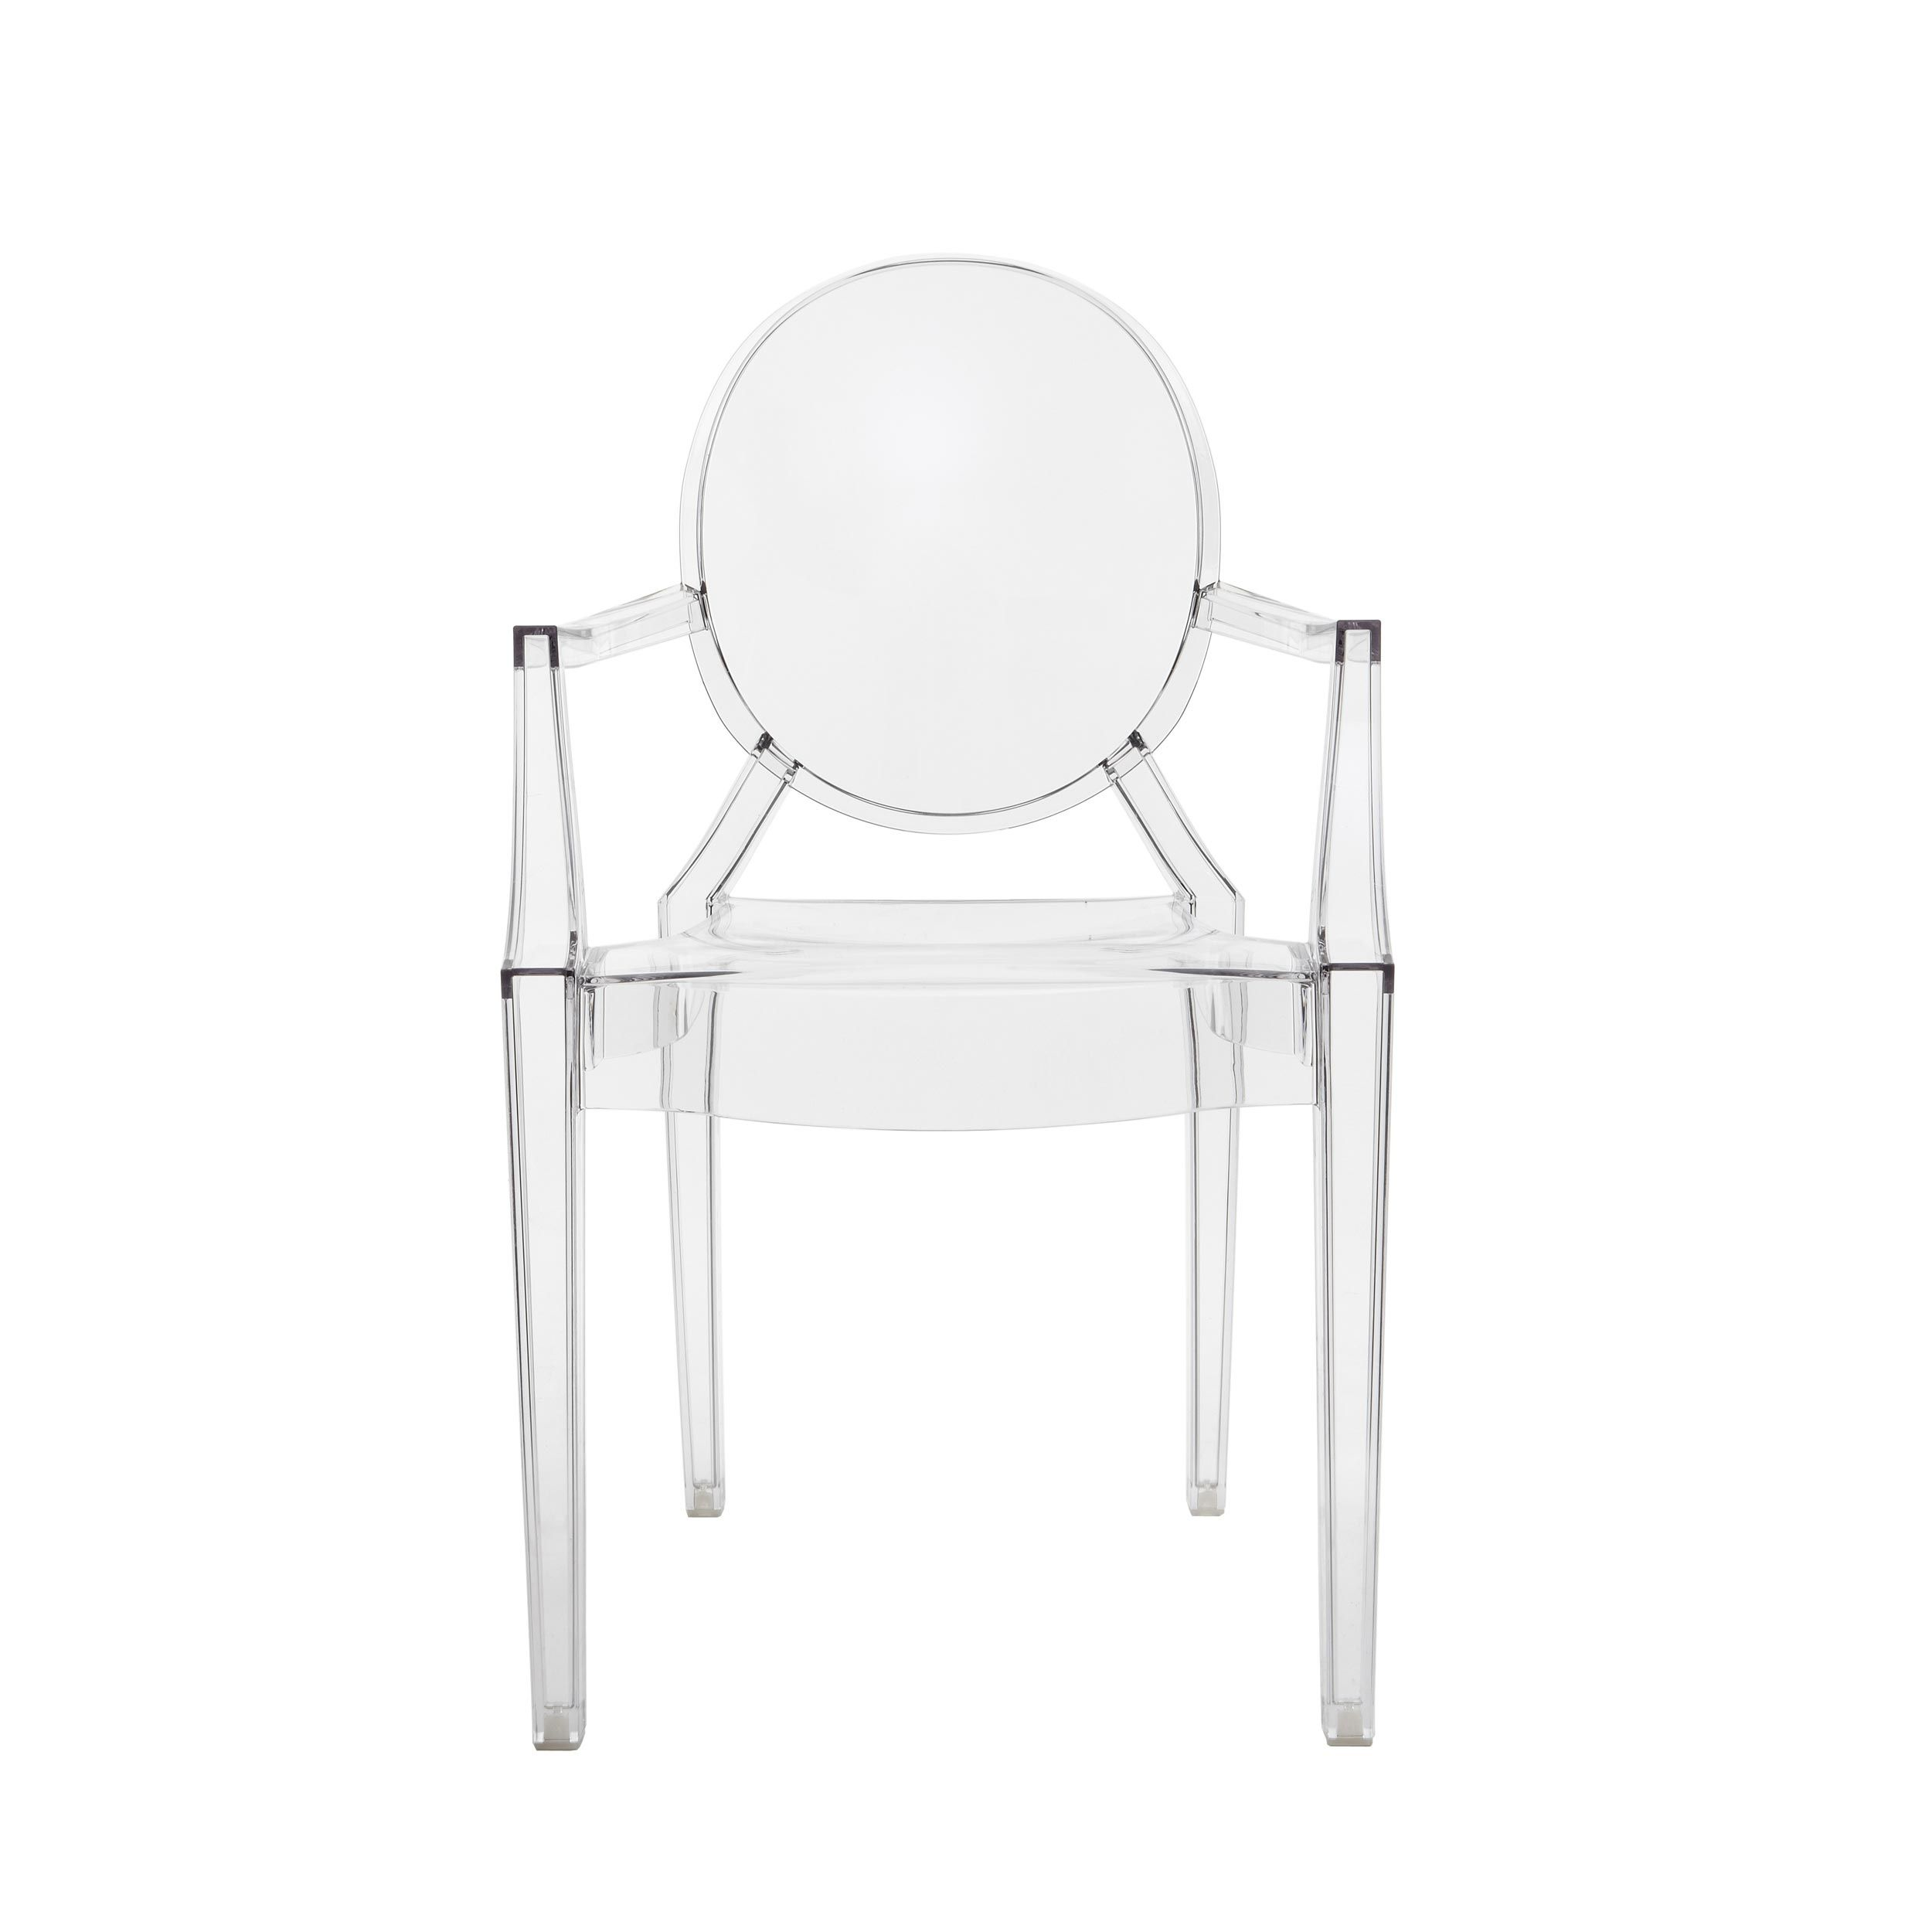 Transparent polycarbonate chair mod. Louis Ghost, Kartell ...